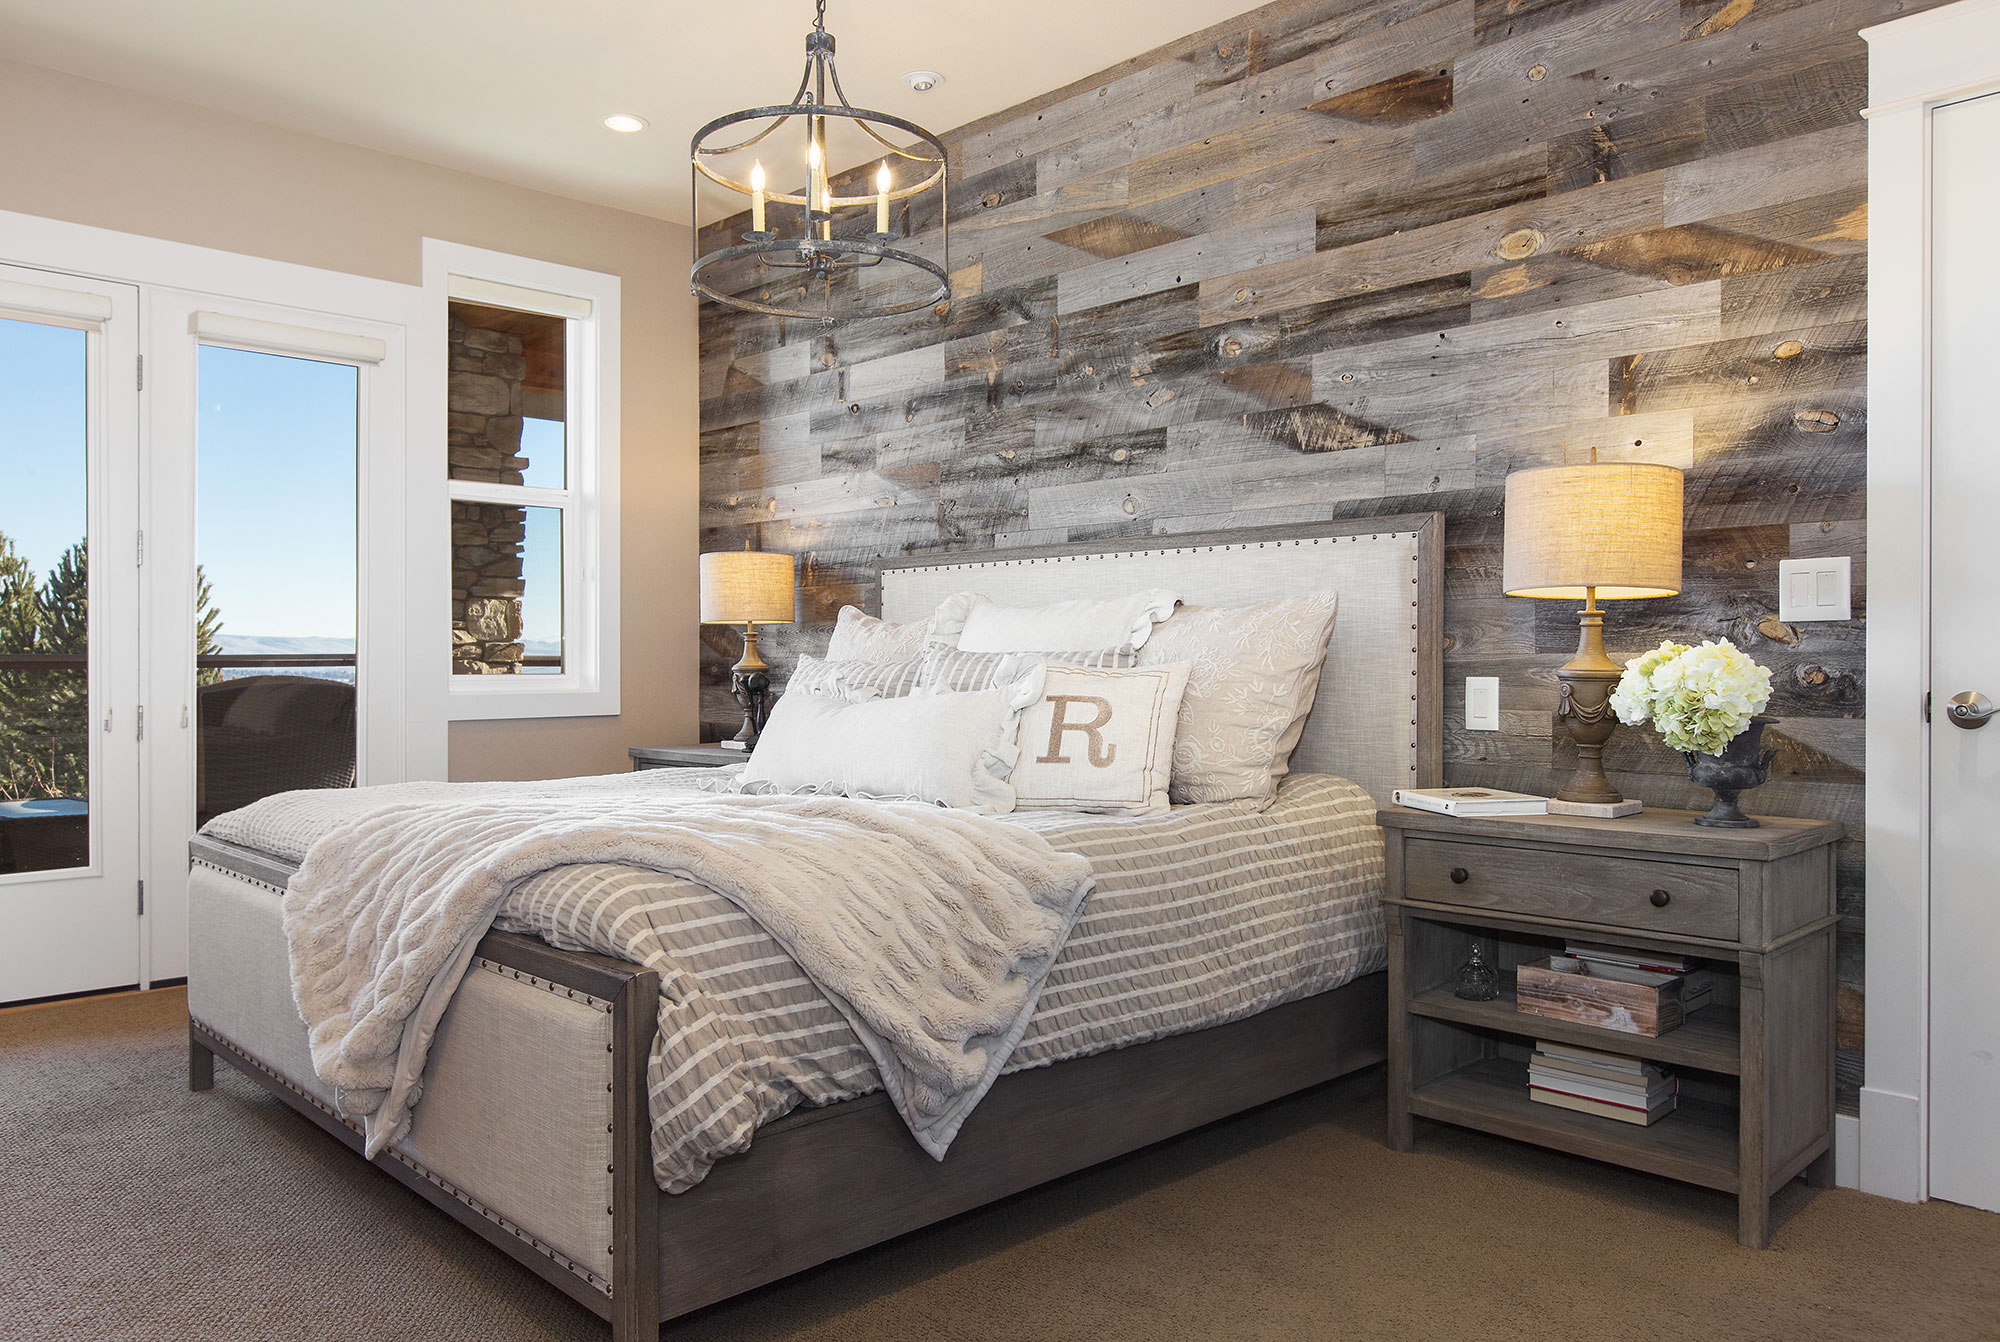 Modern Farmhouse Bedroom Design